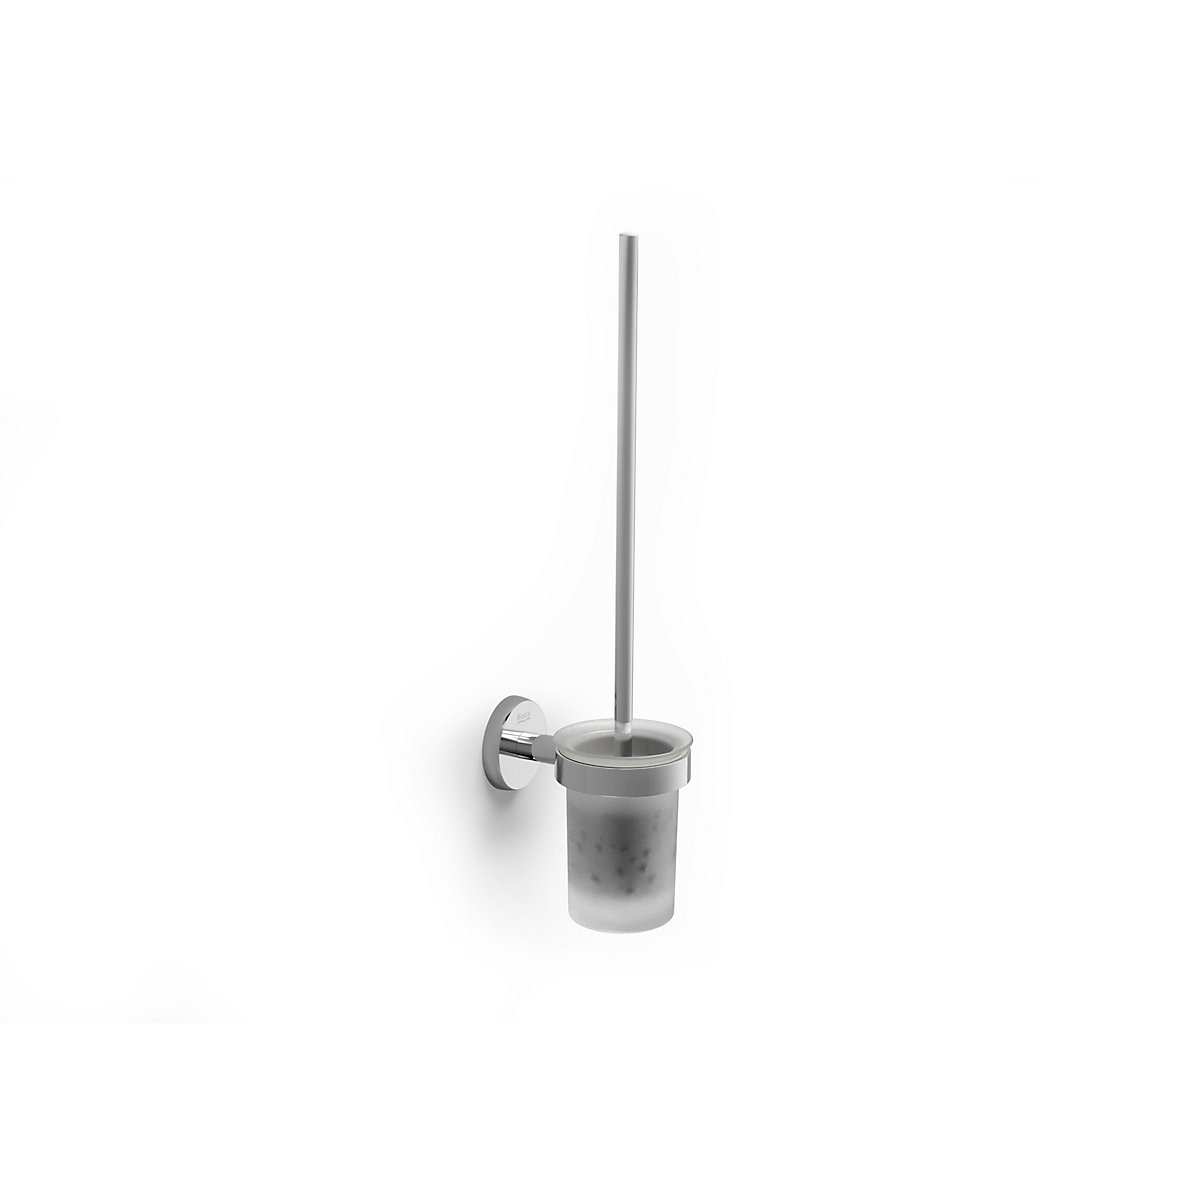 Roca 816715001 Twin Toilet Brush Holder | Travis Perkins